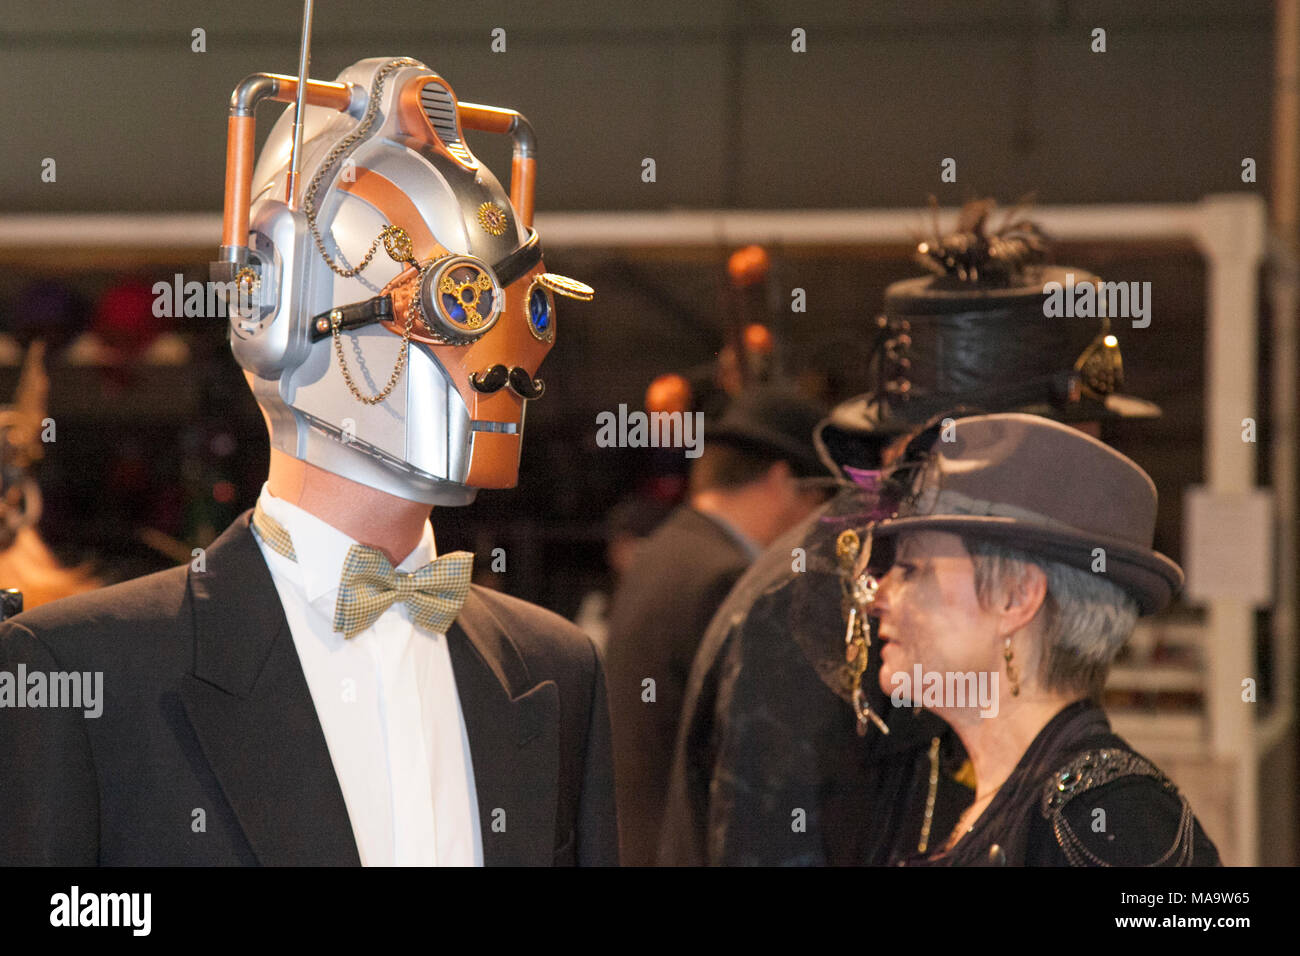 Manchester, UK 31th March 2018.  Post apocalyptic Weekend at the Asylum, the Planet's largest Wasteland Costumes festival where a City becomes steampunk Capital for four days. The Victorian Steam punk Society, teamed up with Manchester's Bowlers Exhibition Centre and the organisers of For the Love of Sci Fi to create a Cosplay Expo. Credit: MediaWorldImages/AlamyLiveNews - Stock Image